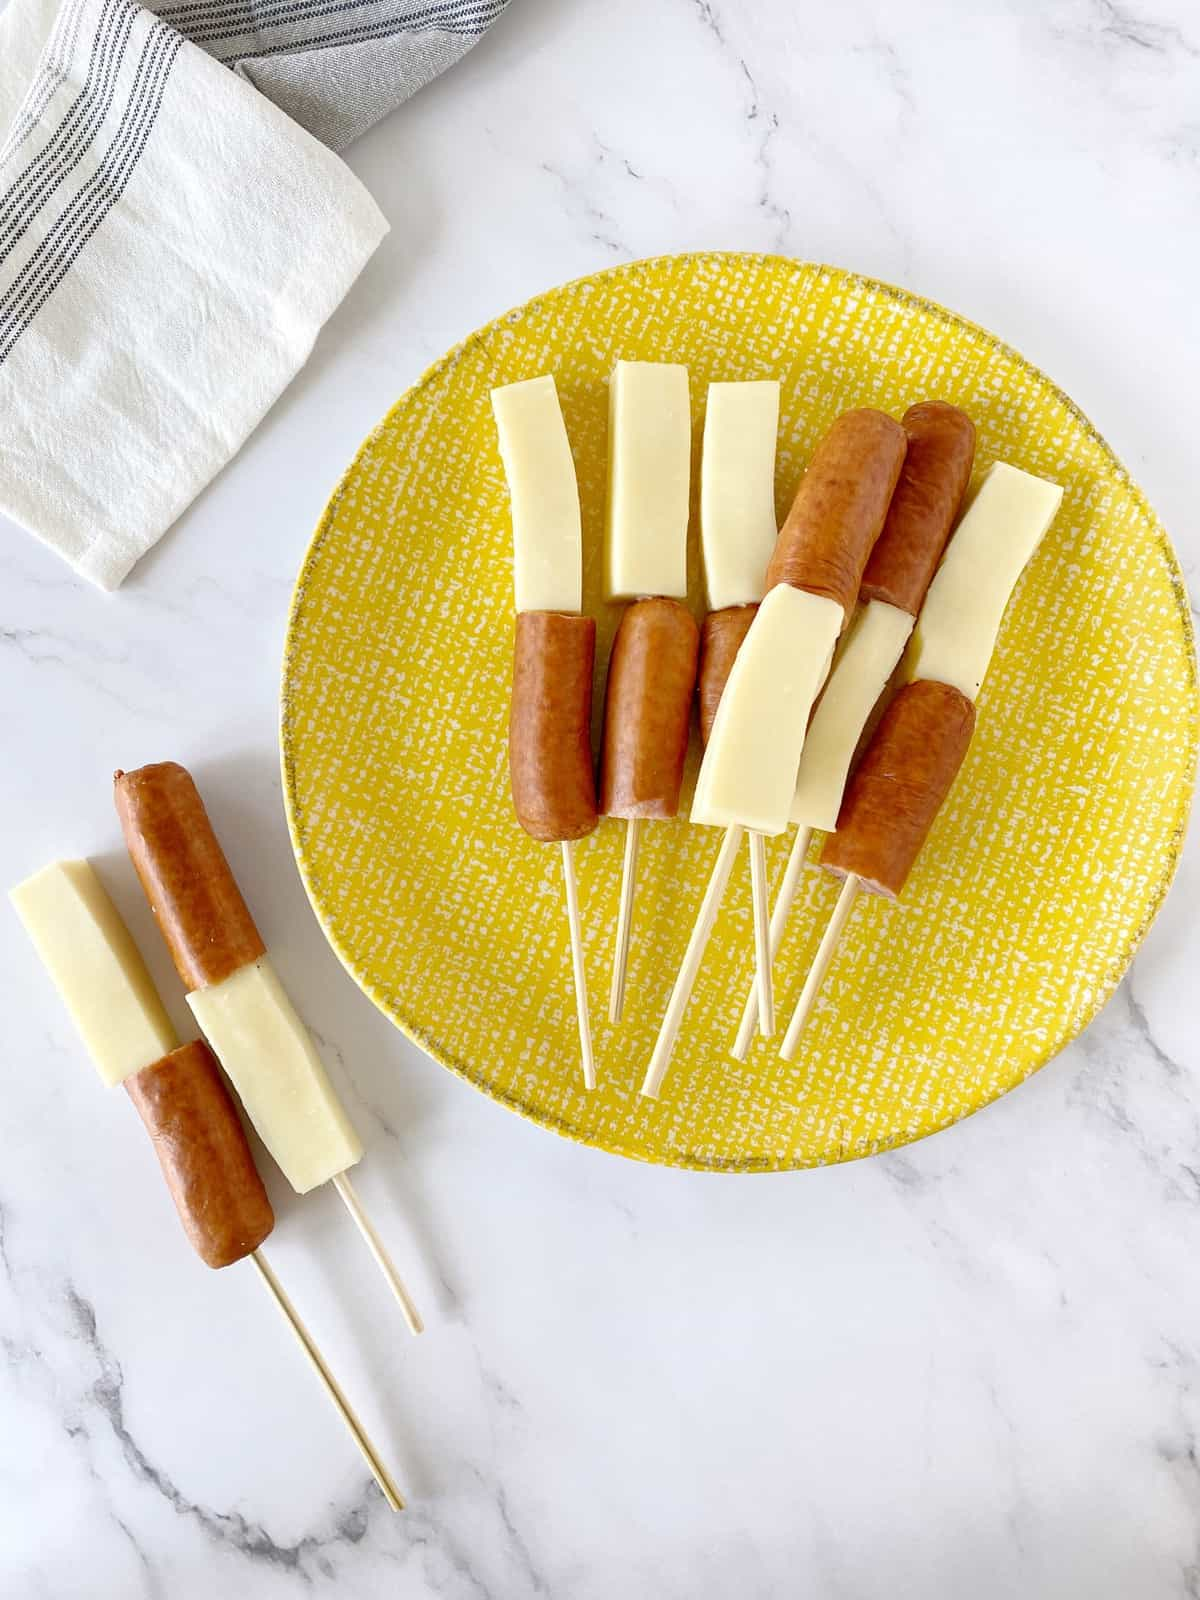 skewers with hot dog and cheese on a yellow plate